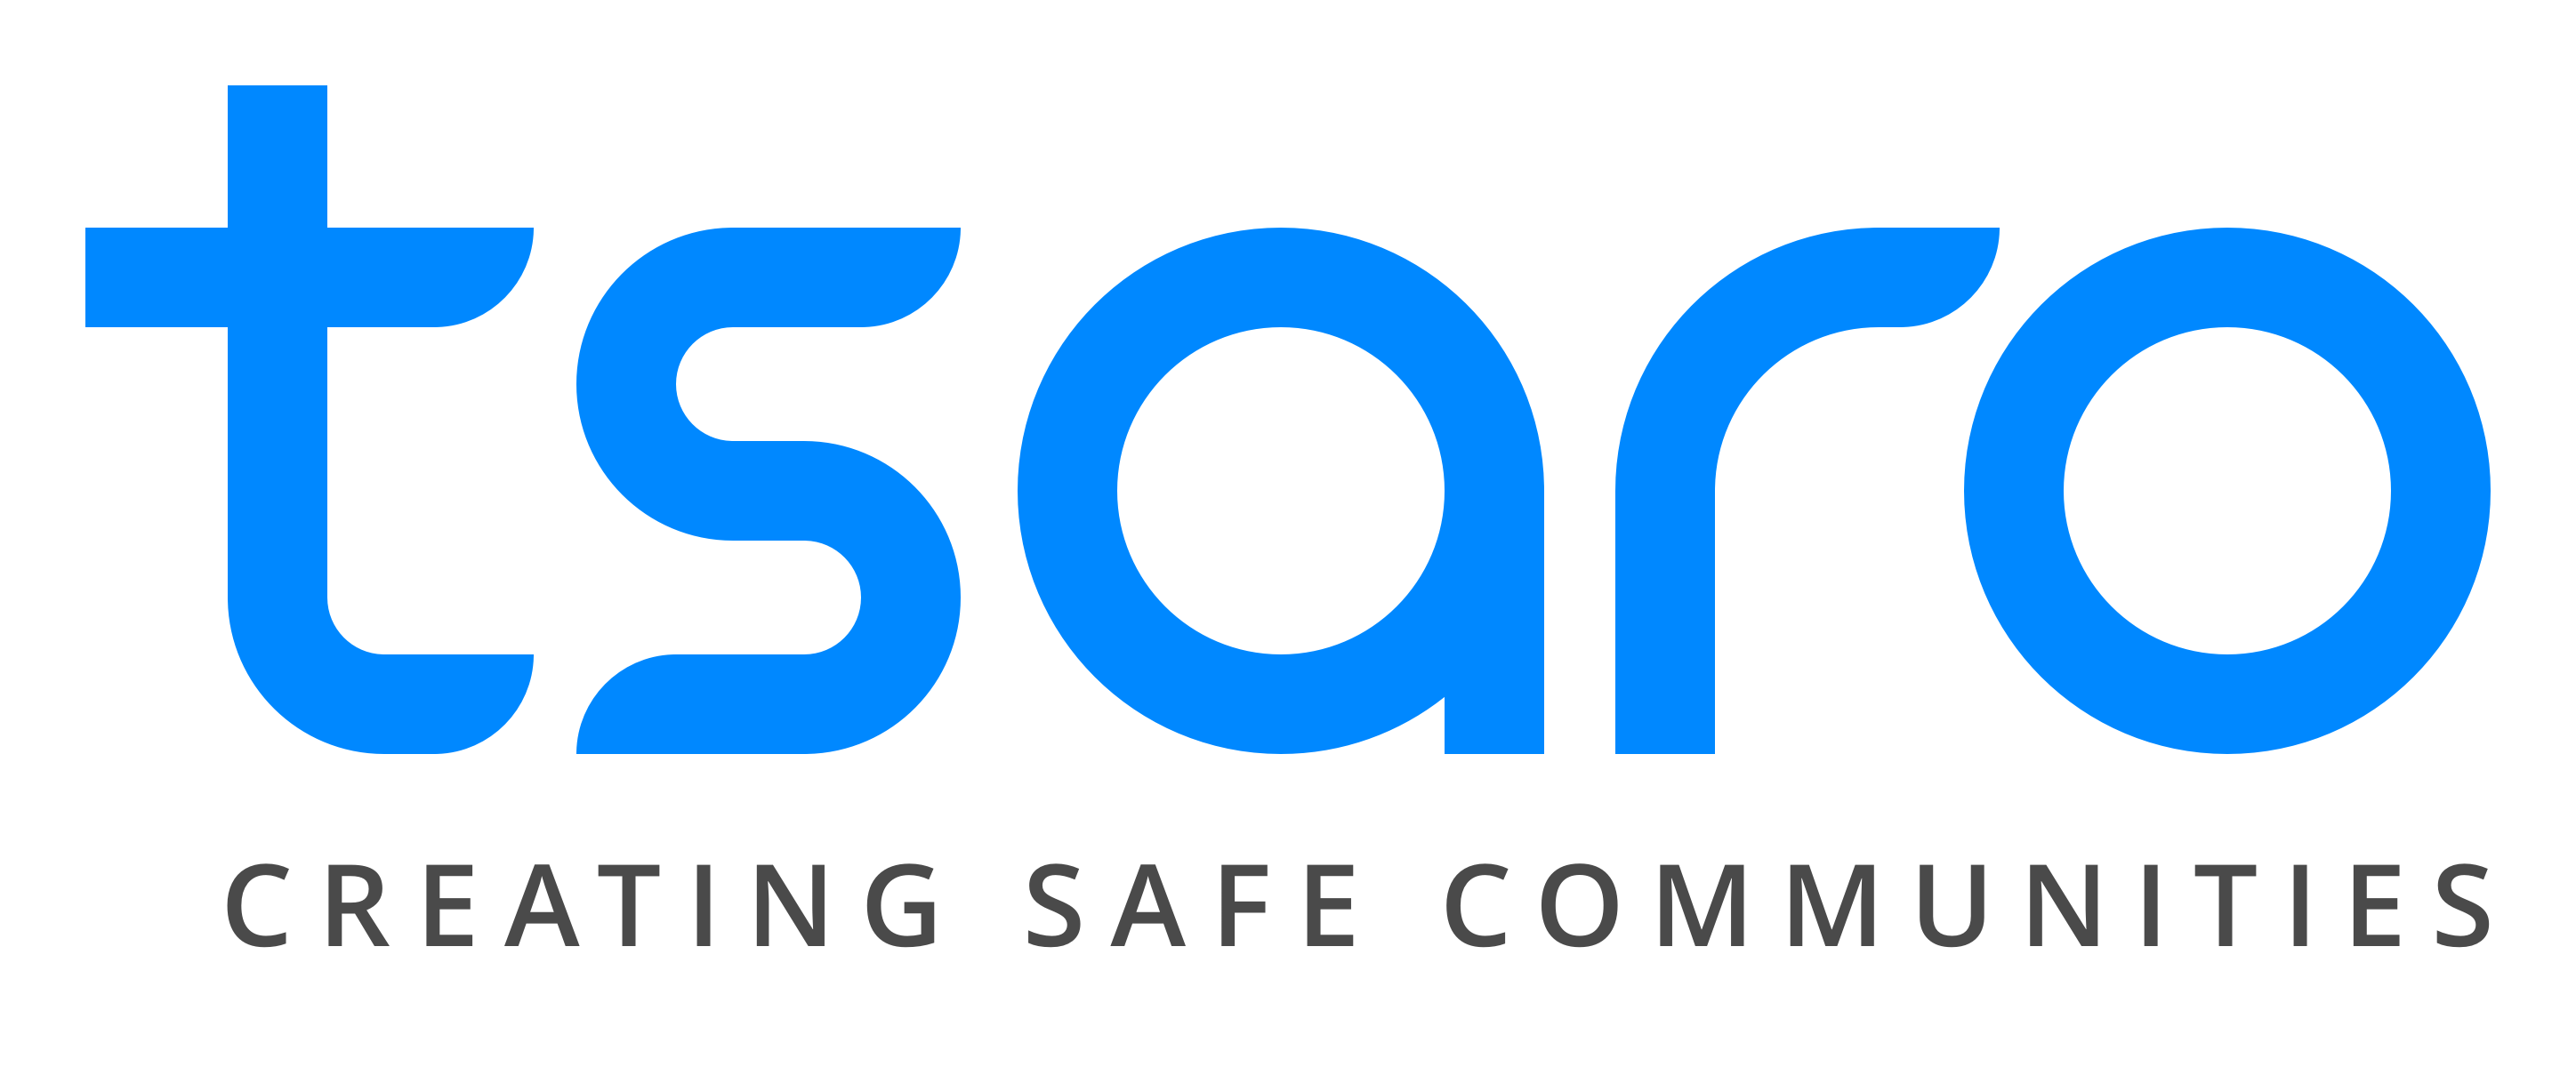 TSARO - Creating Safe Communities - Admin Console